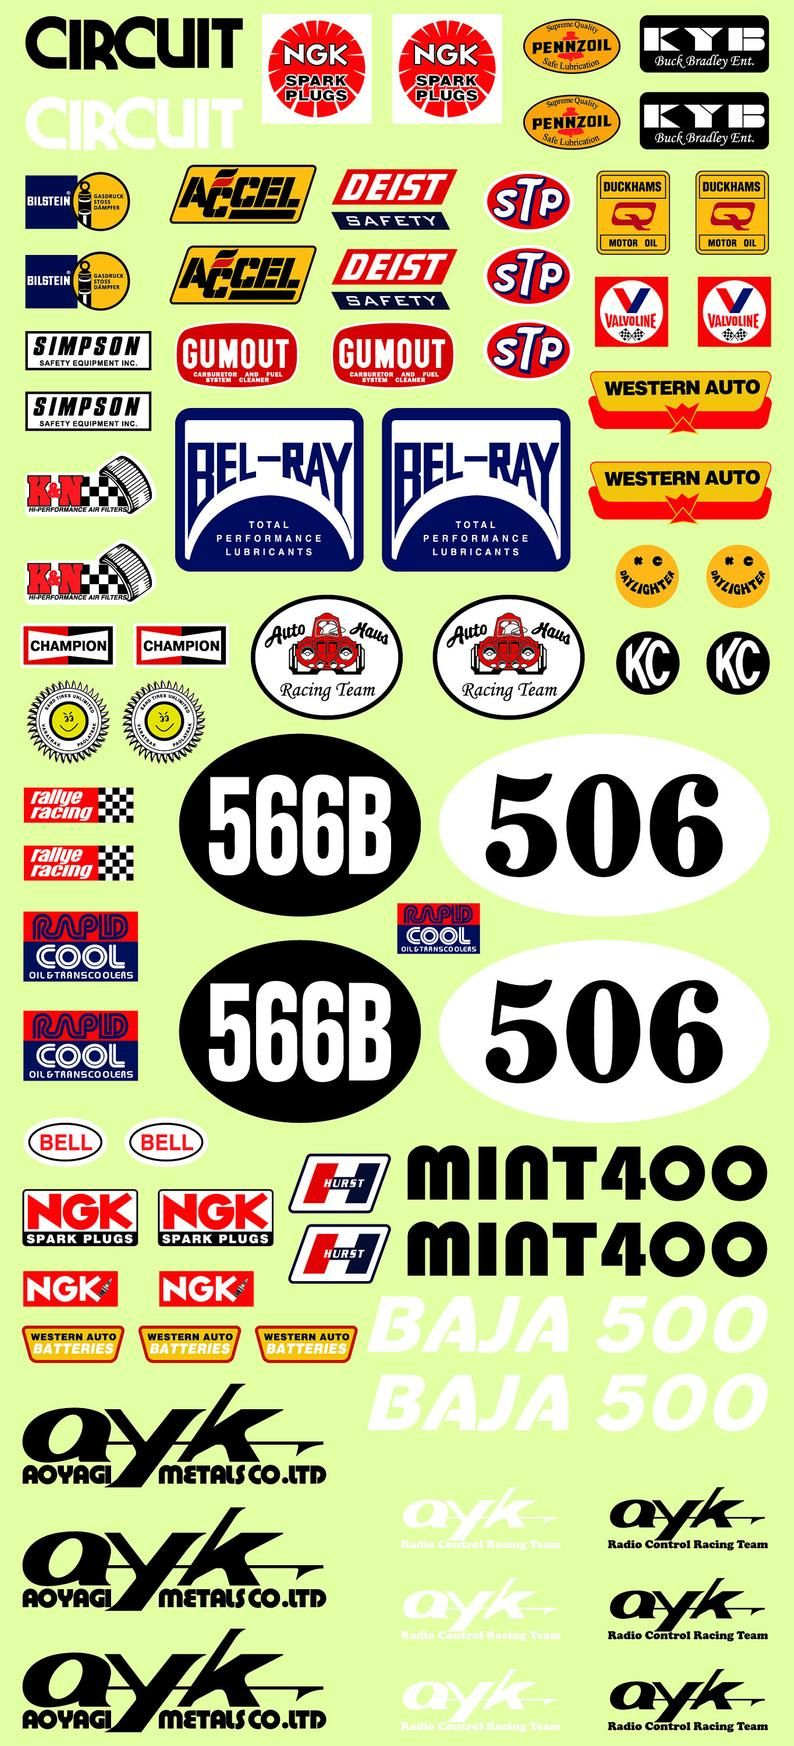 Ayk 566b super trail rc car vinyl sticker sheet 7x5inches etsy